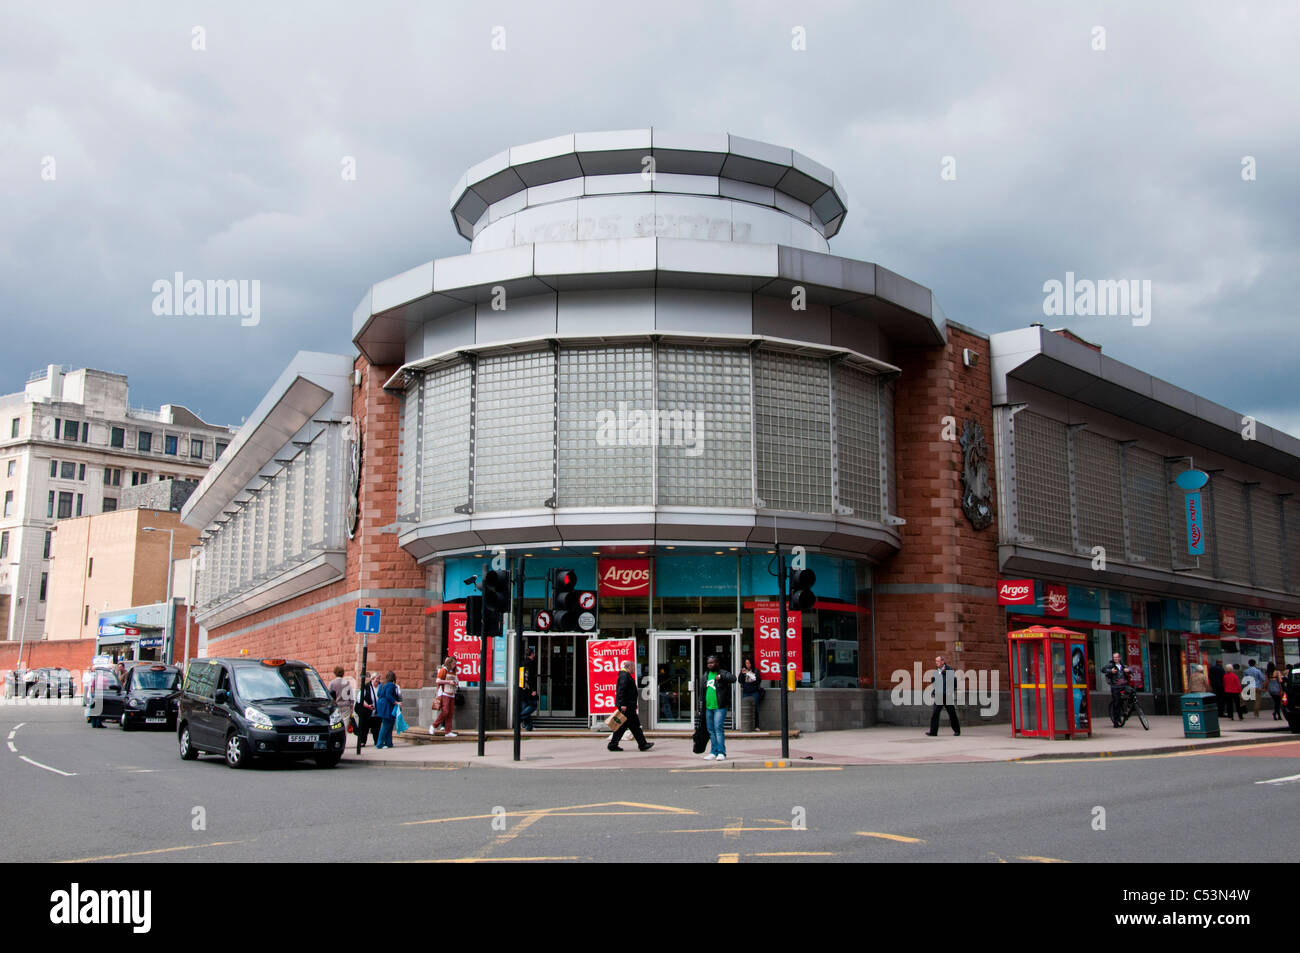 The Stockwell street branch of Argos in Glasgow city centre. - Stock Image